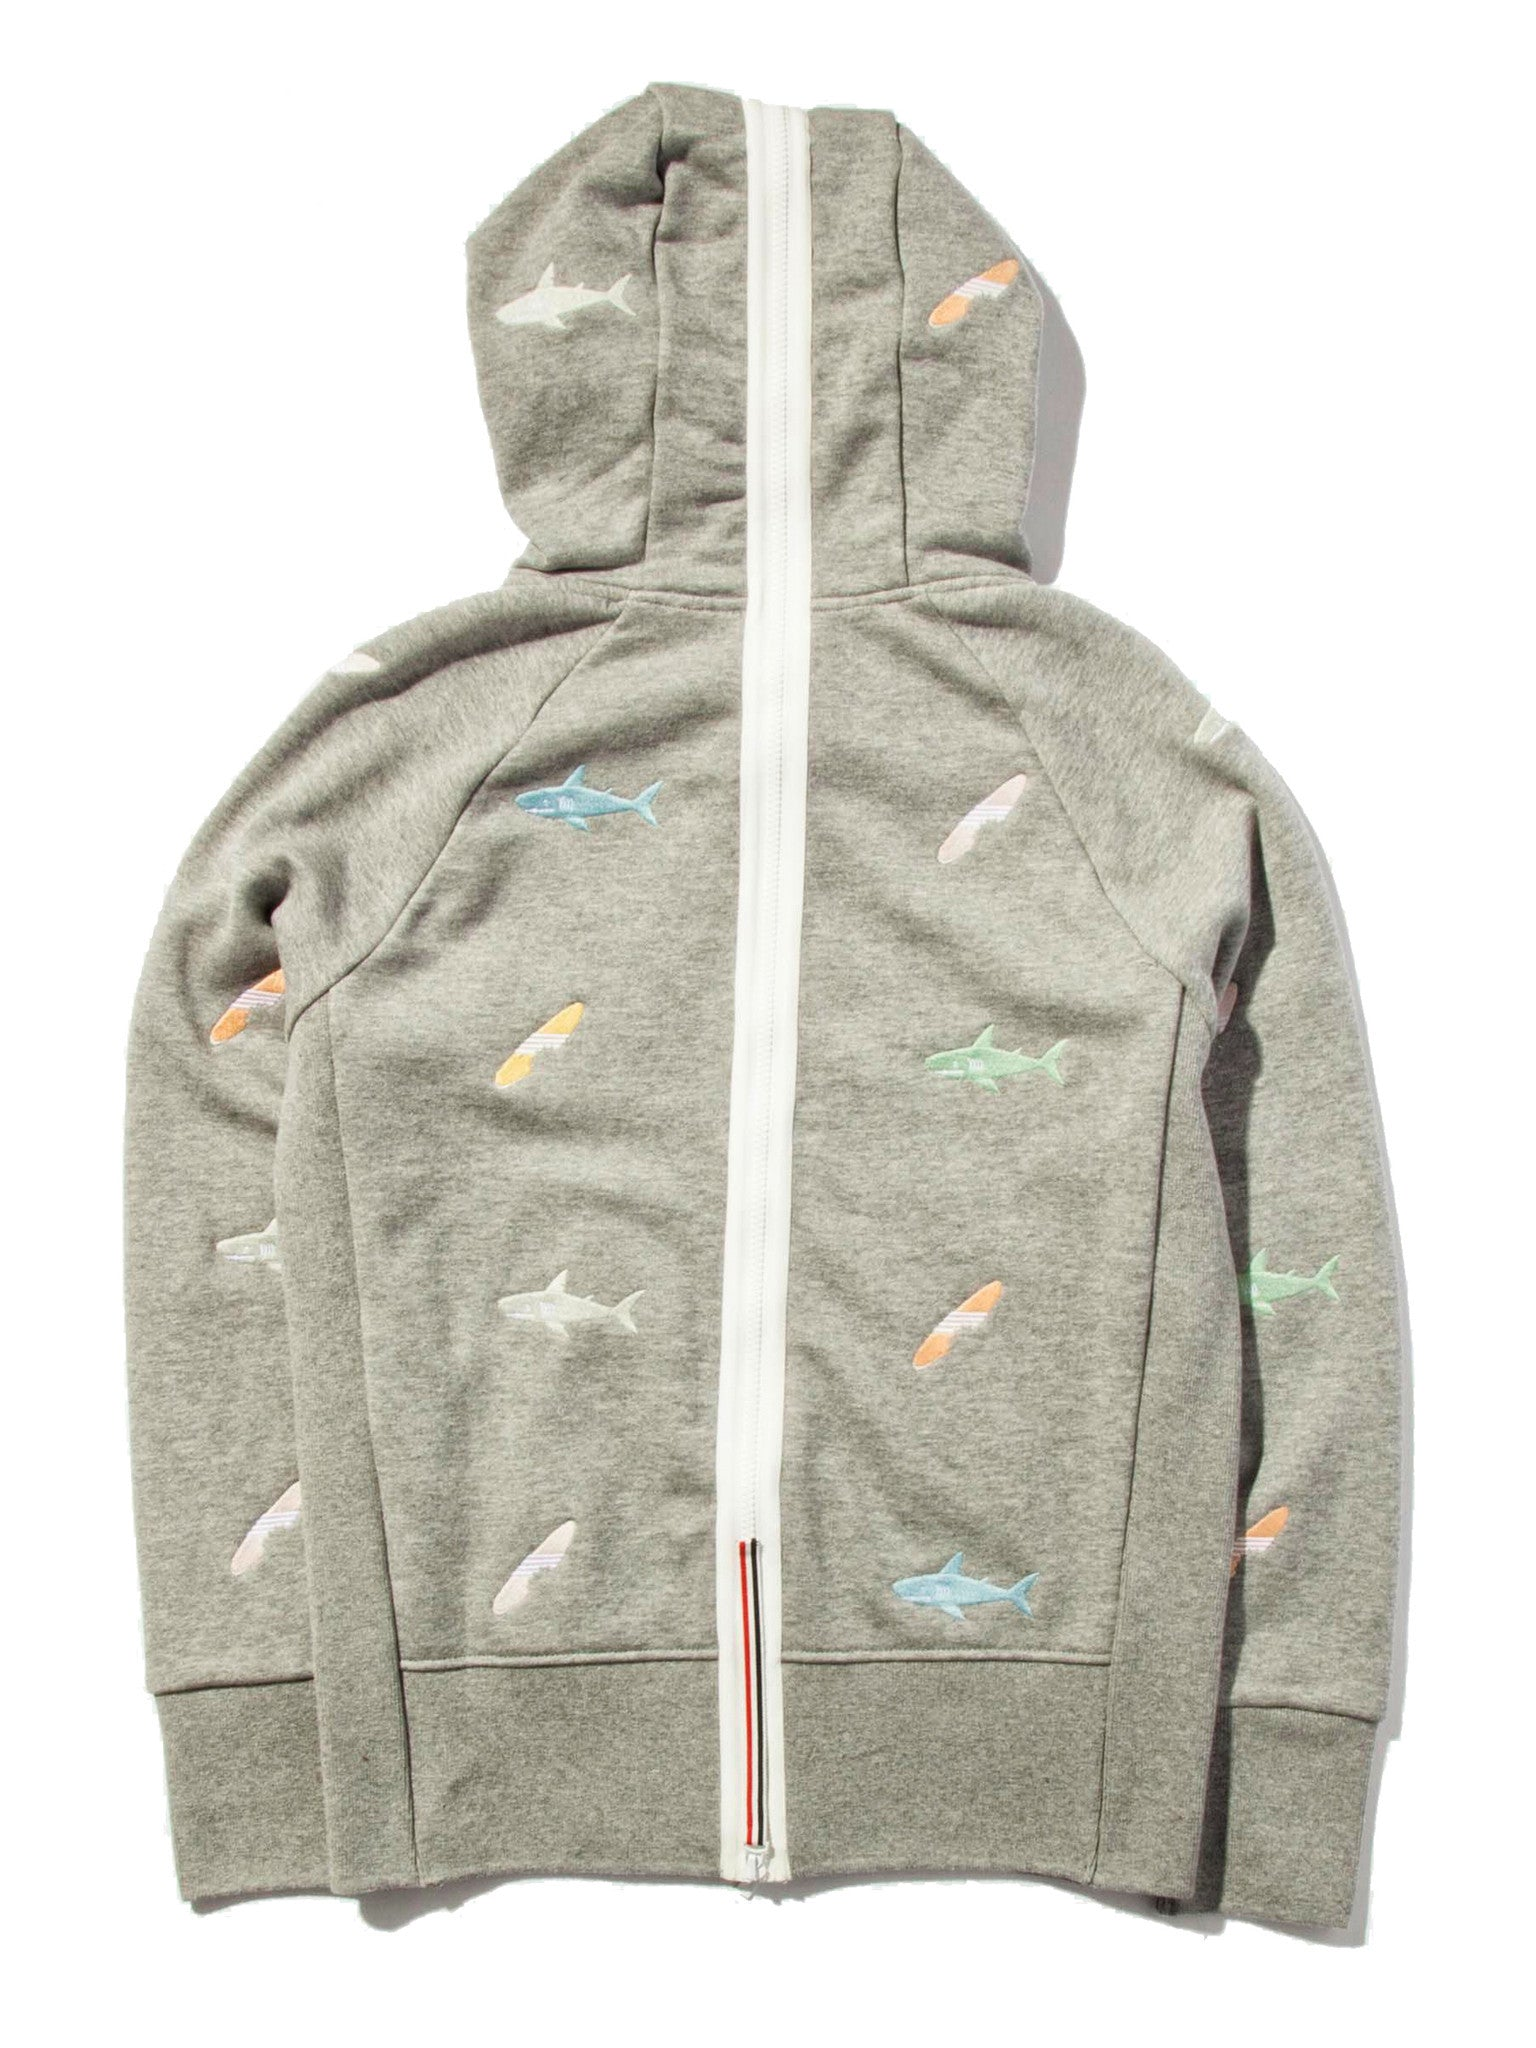 Light Grey Classic Zip Up Hoodie (Aqua Zip Loop Back) 6